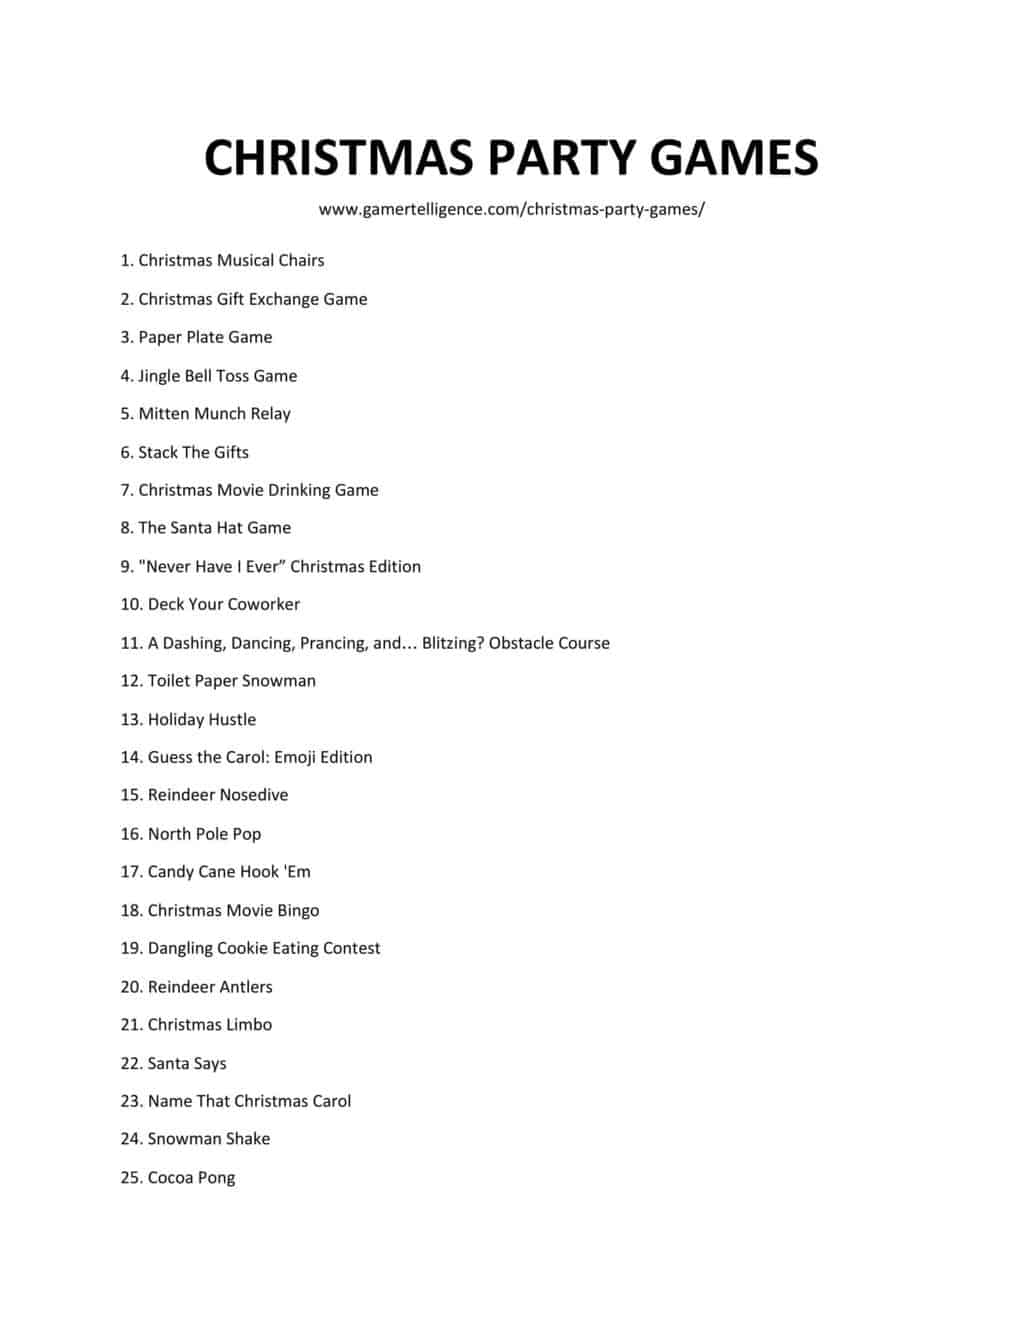 Downloadable and Printable list of Christmas Party Games as jpg or pdf